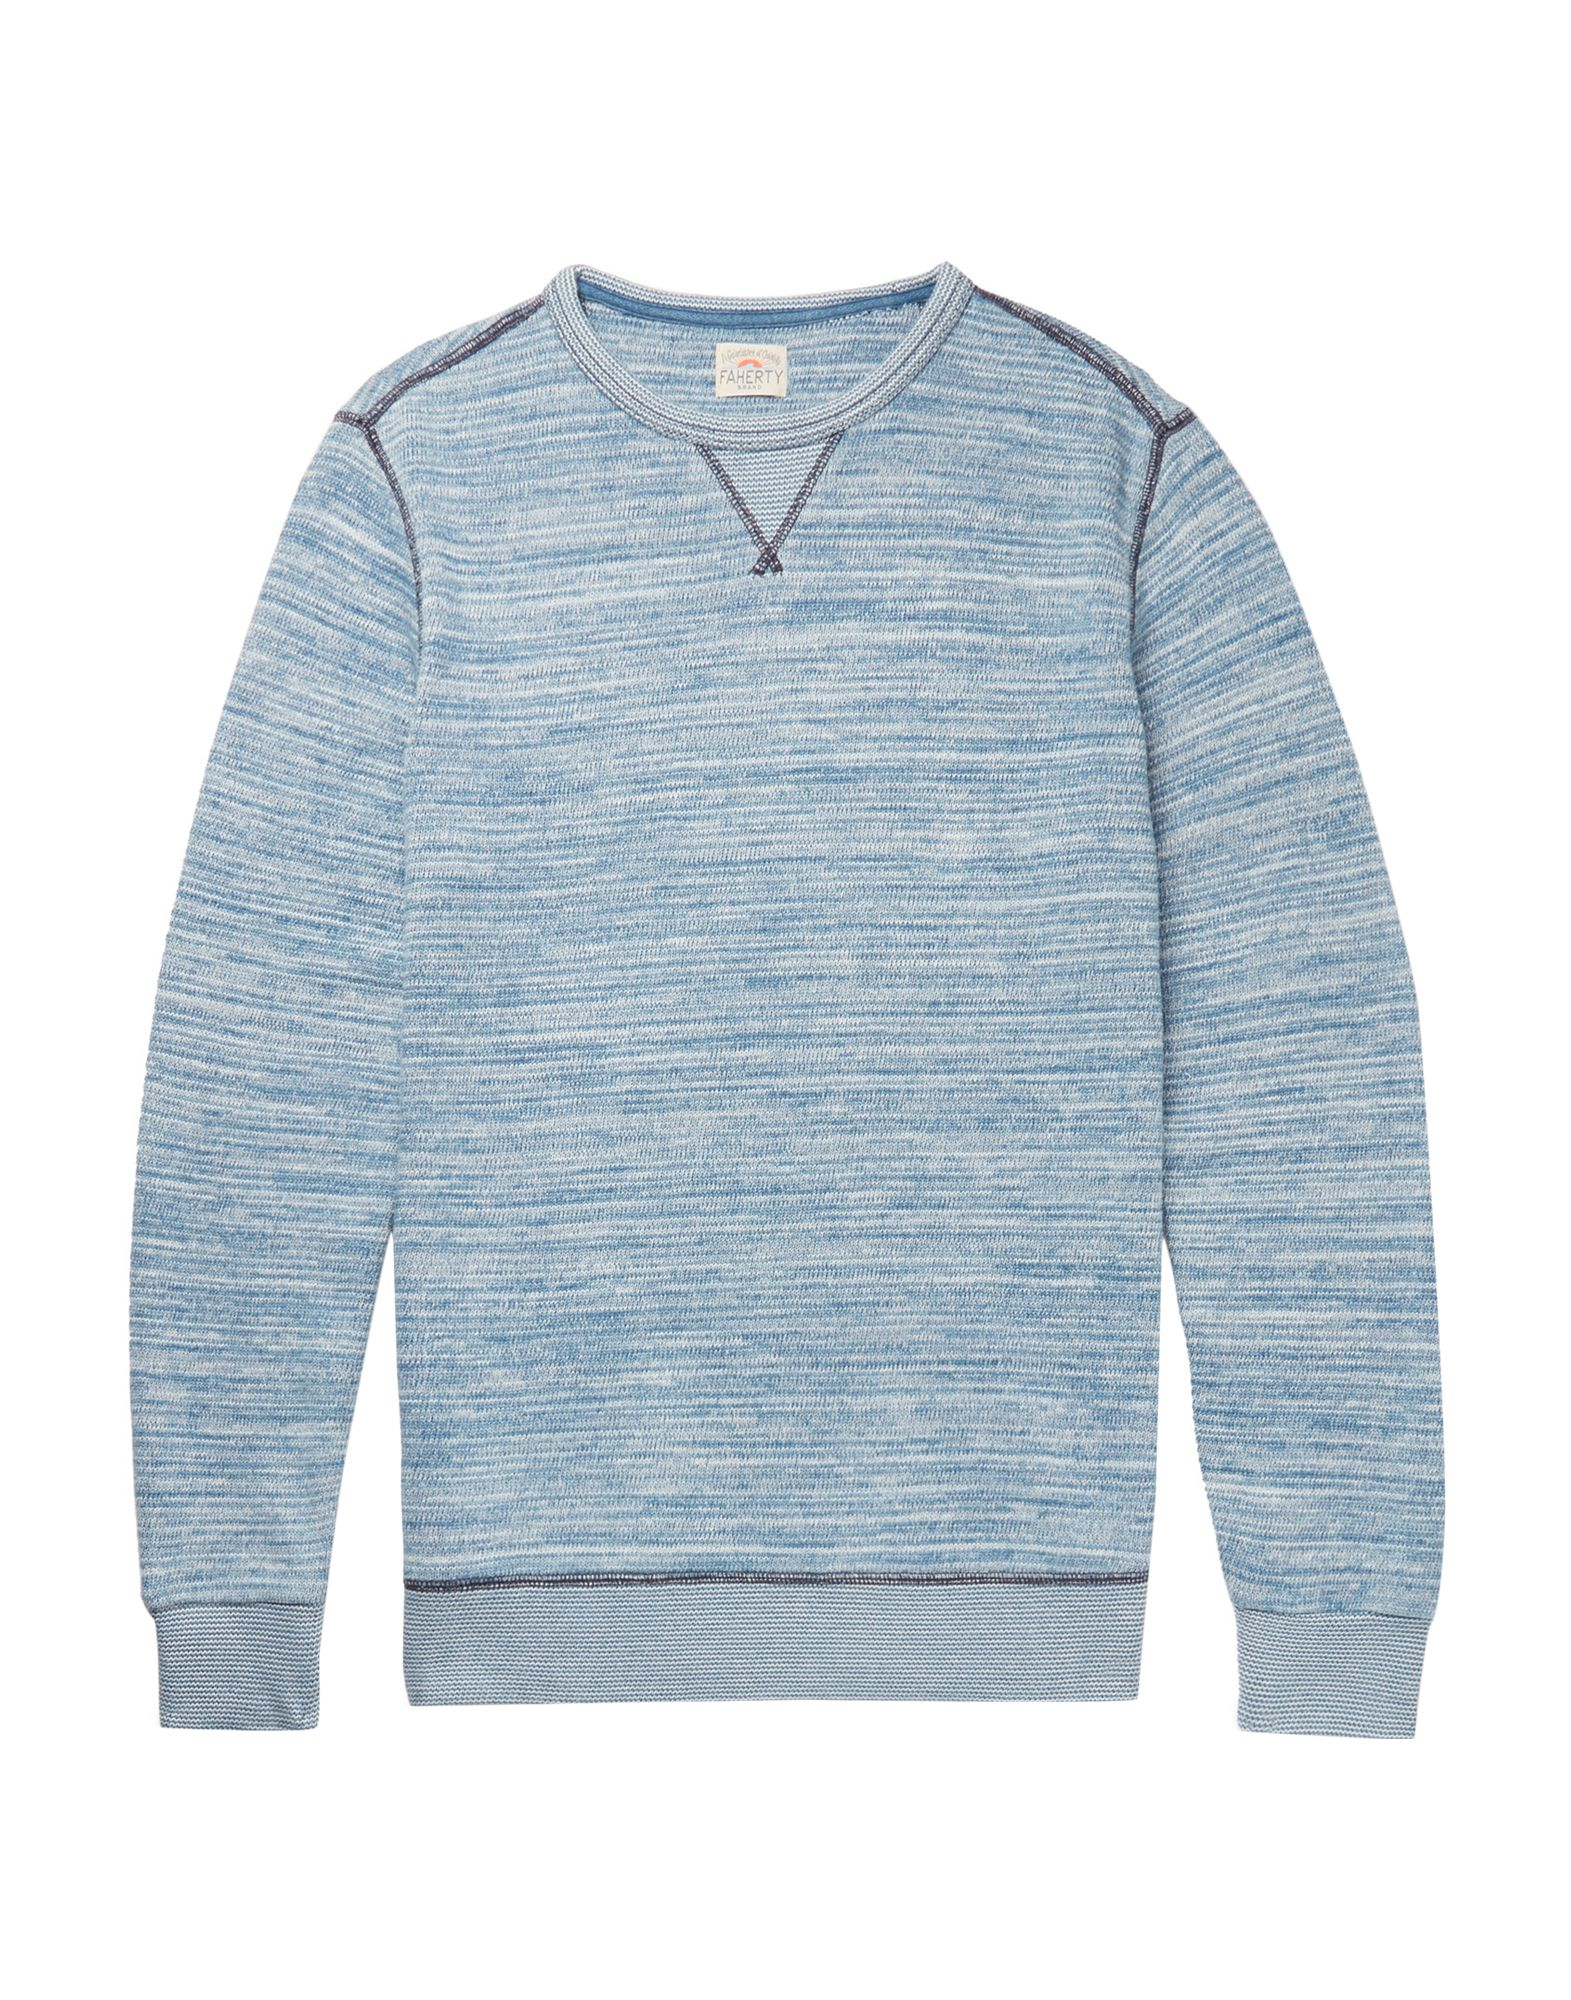 FAHERTY Sweatshirts. long sleeves, multicolor pattern, logo, mélange, round collar, knitted, no pockets. 100% Cotton